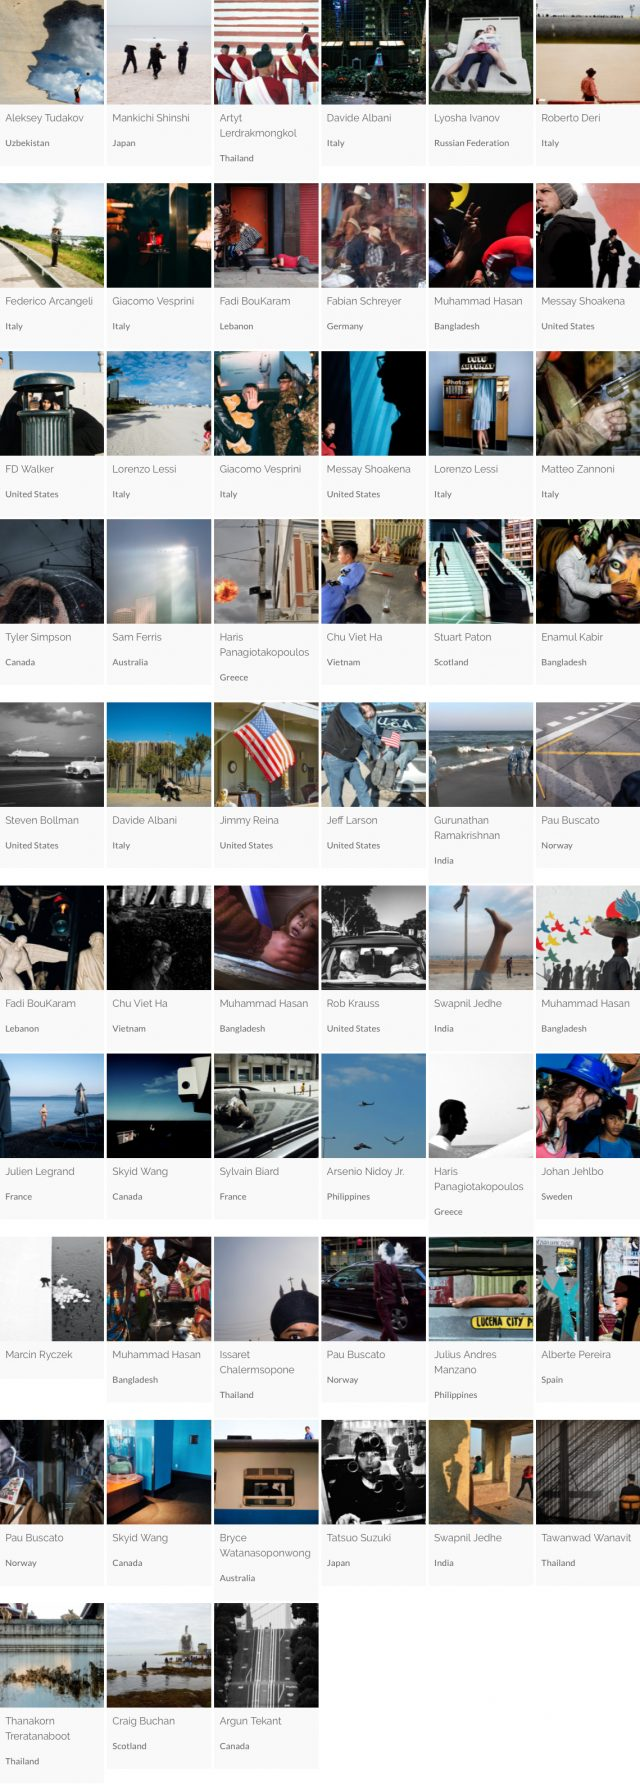 StreetFoto Finalists - Single Image Category